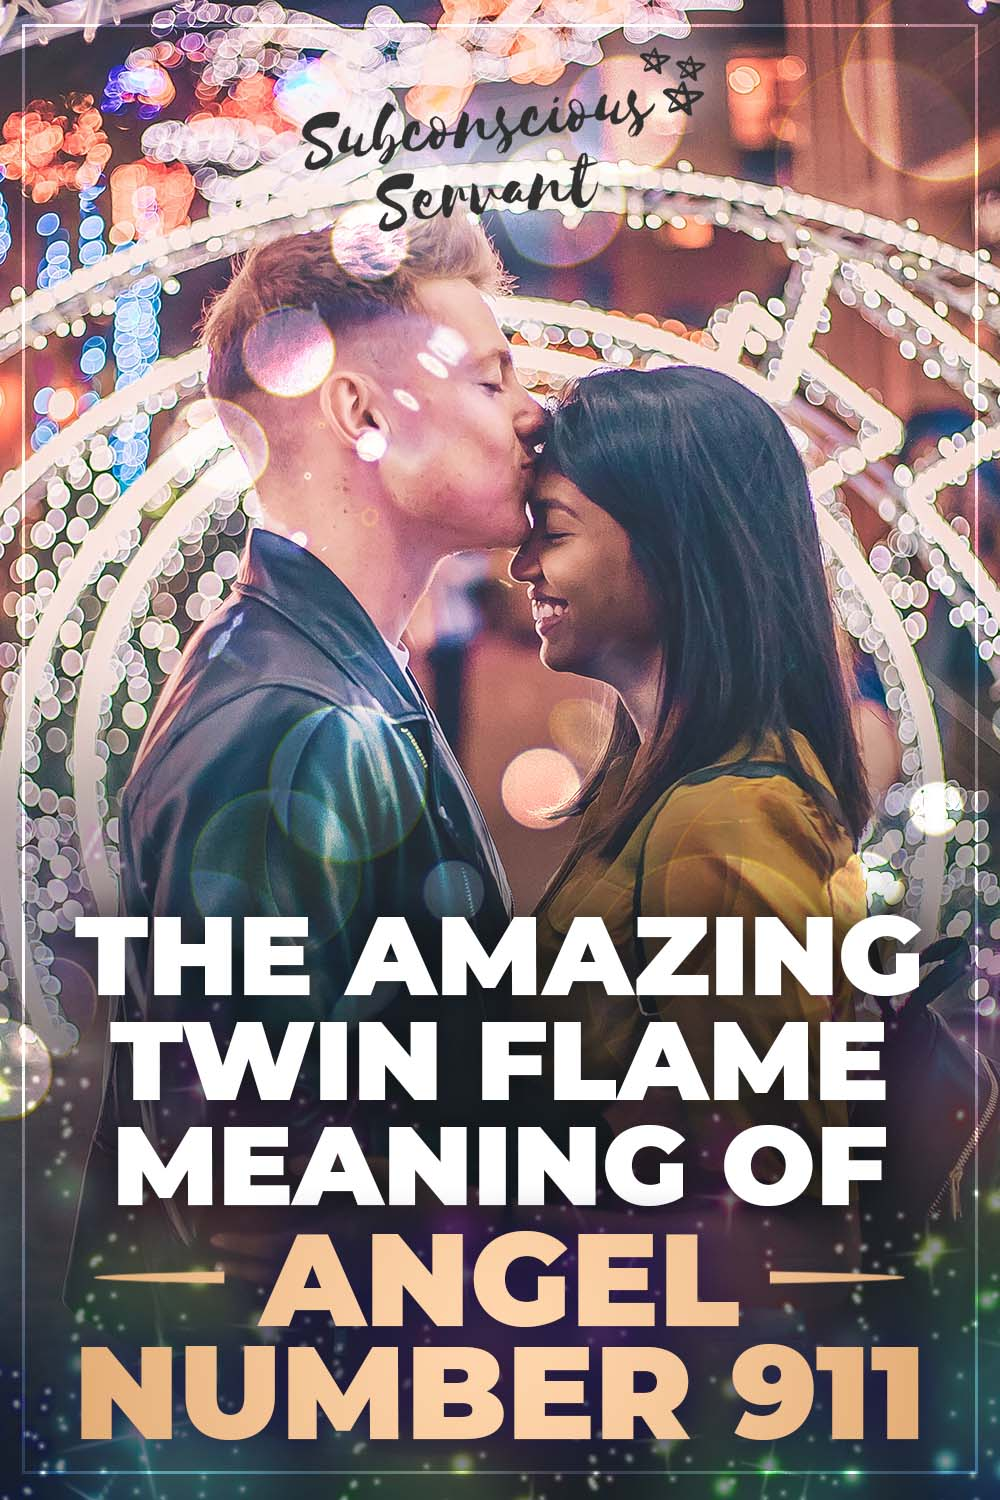 The Amazing Twin Flame Meaning Of Angel Number 911